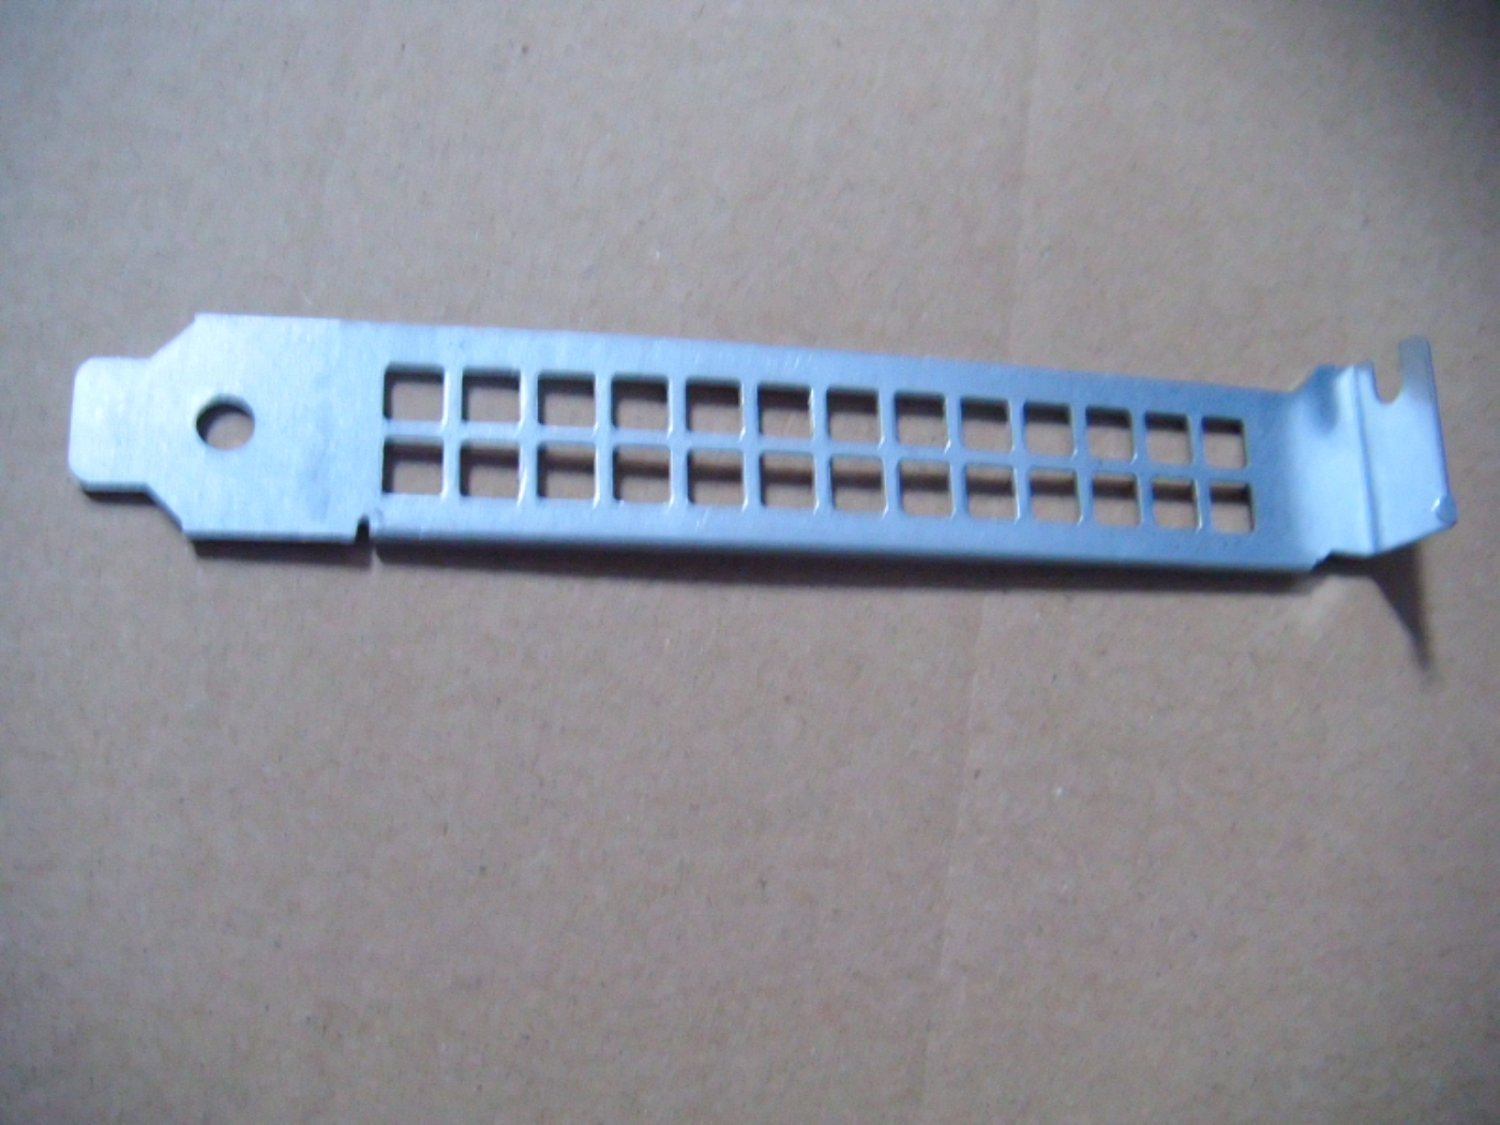 Dell OPX 990 390 790 3010 7010 9010 3020 7020 9020 MT 4U PCI Blank Slot Cover ME60192 N680D Vented